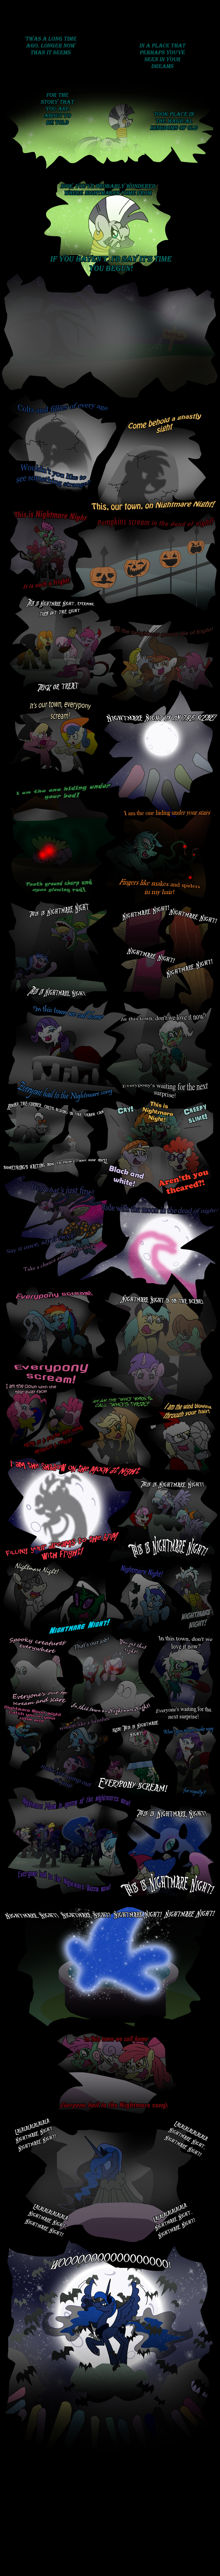 This is Nightmare Night by unoservix